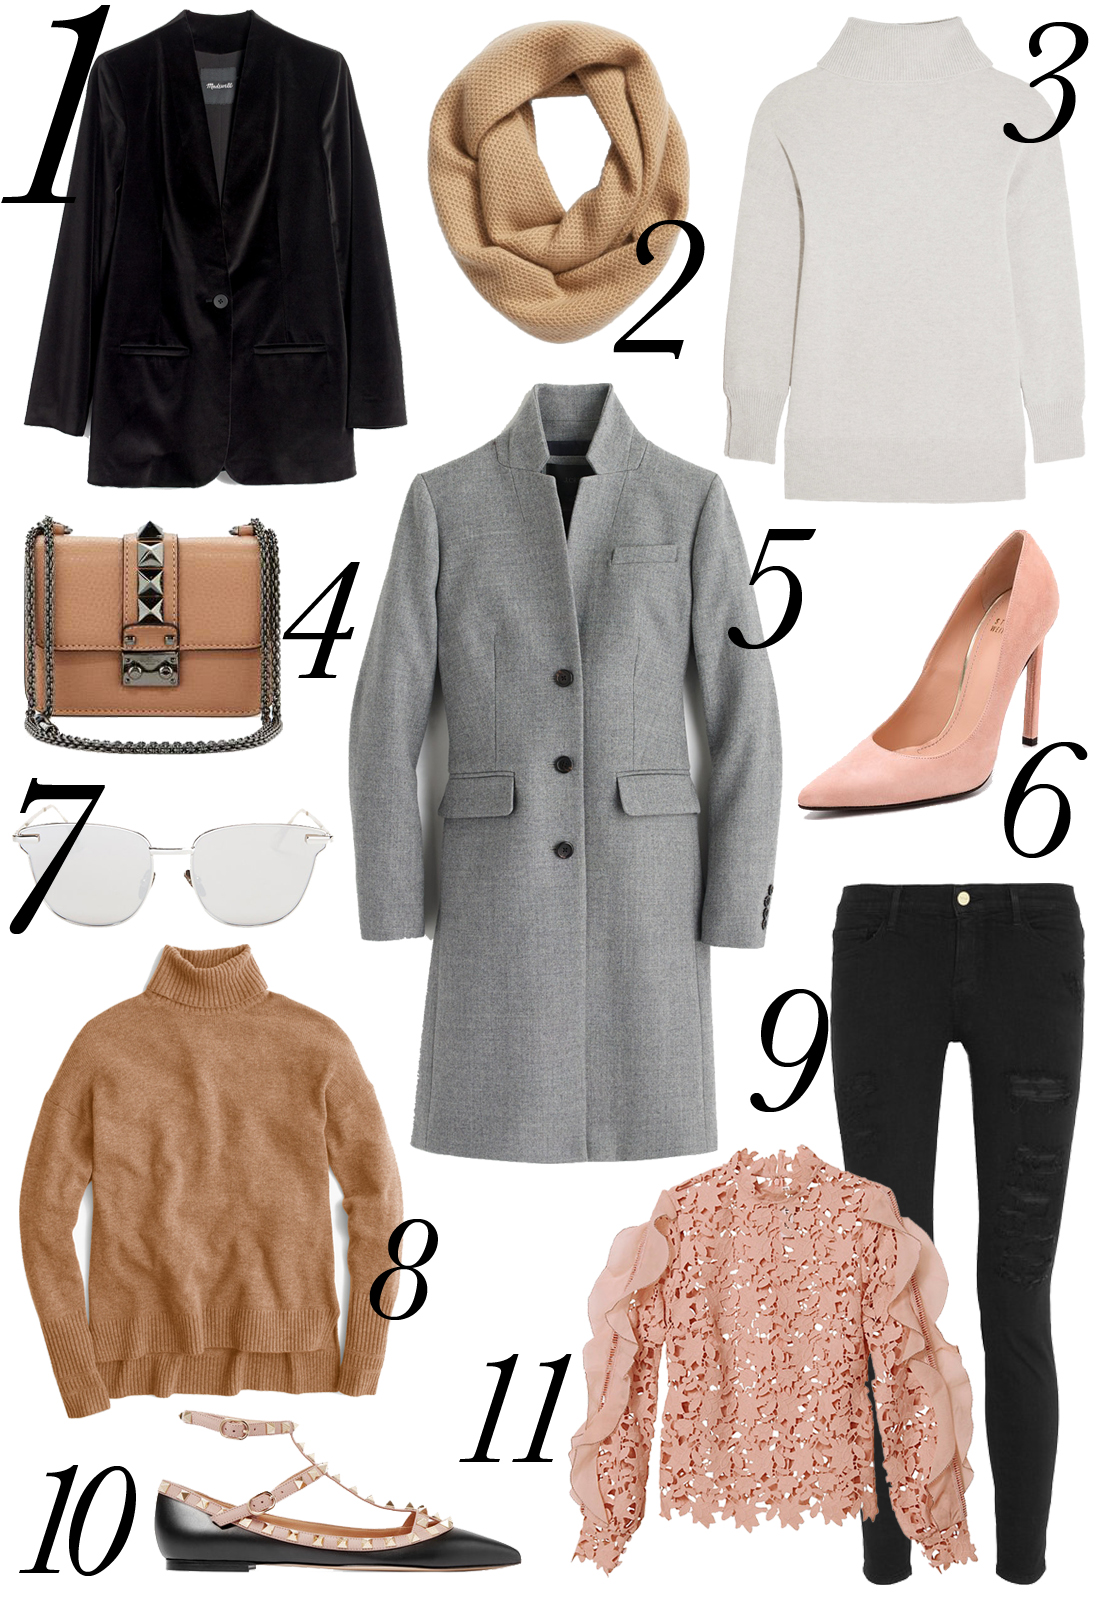 Fall Apparel, Black Velvet Blazer, Camel Infinity Scarf, Grey Turtleneck Sweater, Valentino Lock Clutch, Grey Topcoat, Blush Pumps, Camel Turtleneck Sweater, Self Portrait Pink Lace Top, Black Ripped Skinny Jeans, Valentino Rockstud Flats, Silver Mirror Sunglasses